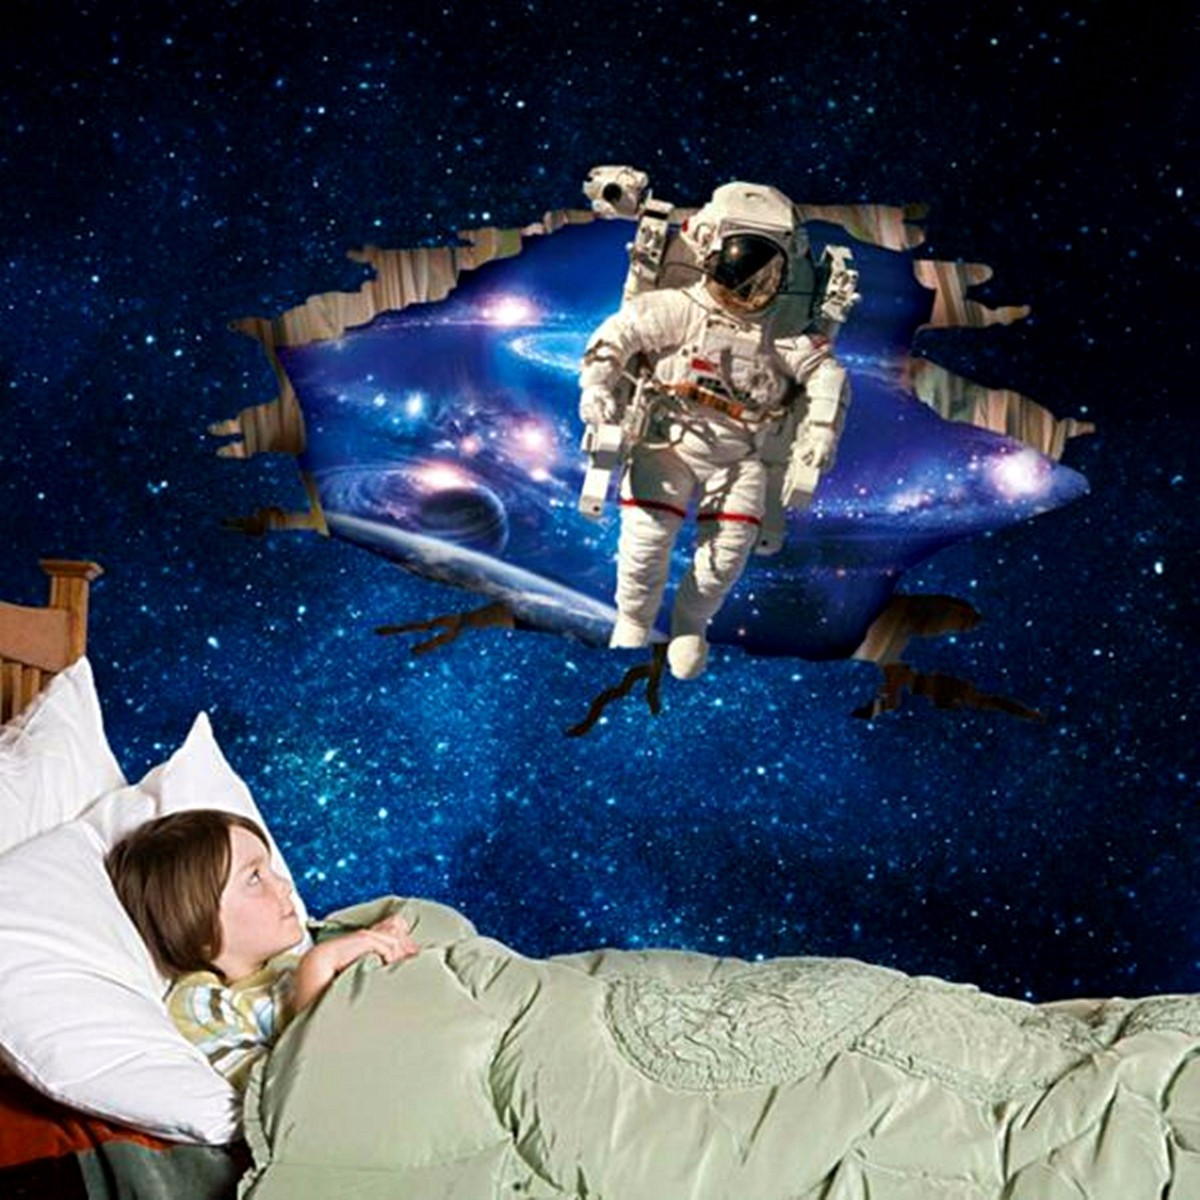 3D Wall Stickers Wallpaper Space Astronauts Decor Kids Room Decal Art Gifts